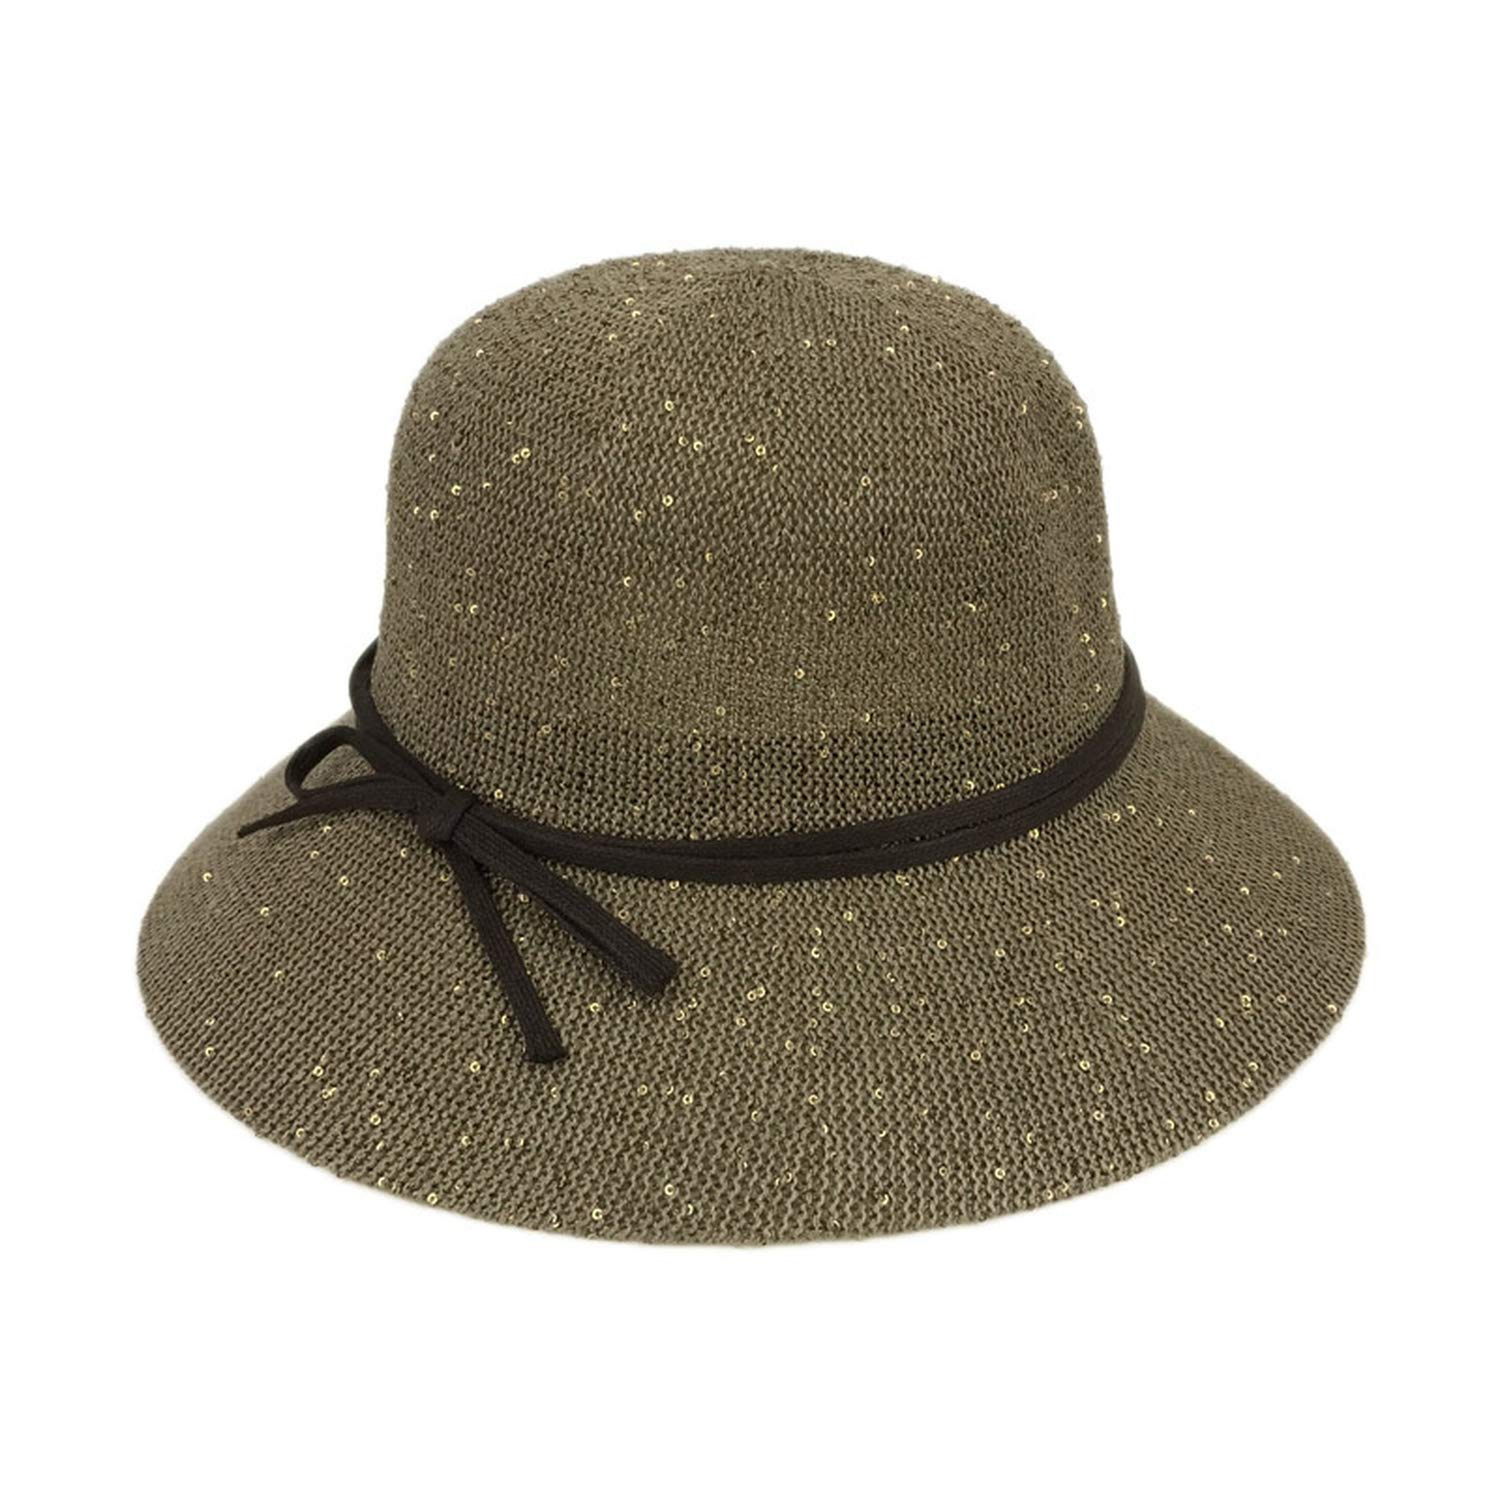 Women Shiny Fedora Hats Spring Round Top Trilby with Bowknot Vintage Knitted Casual Sunshade Hats